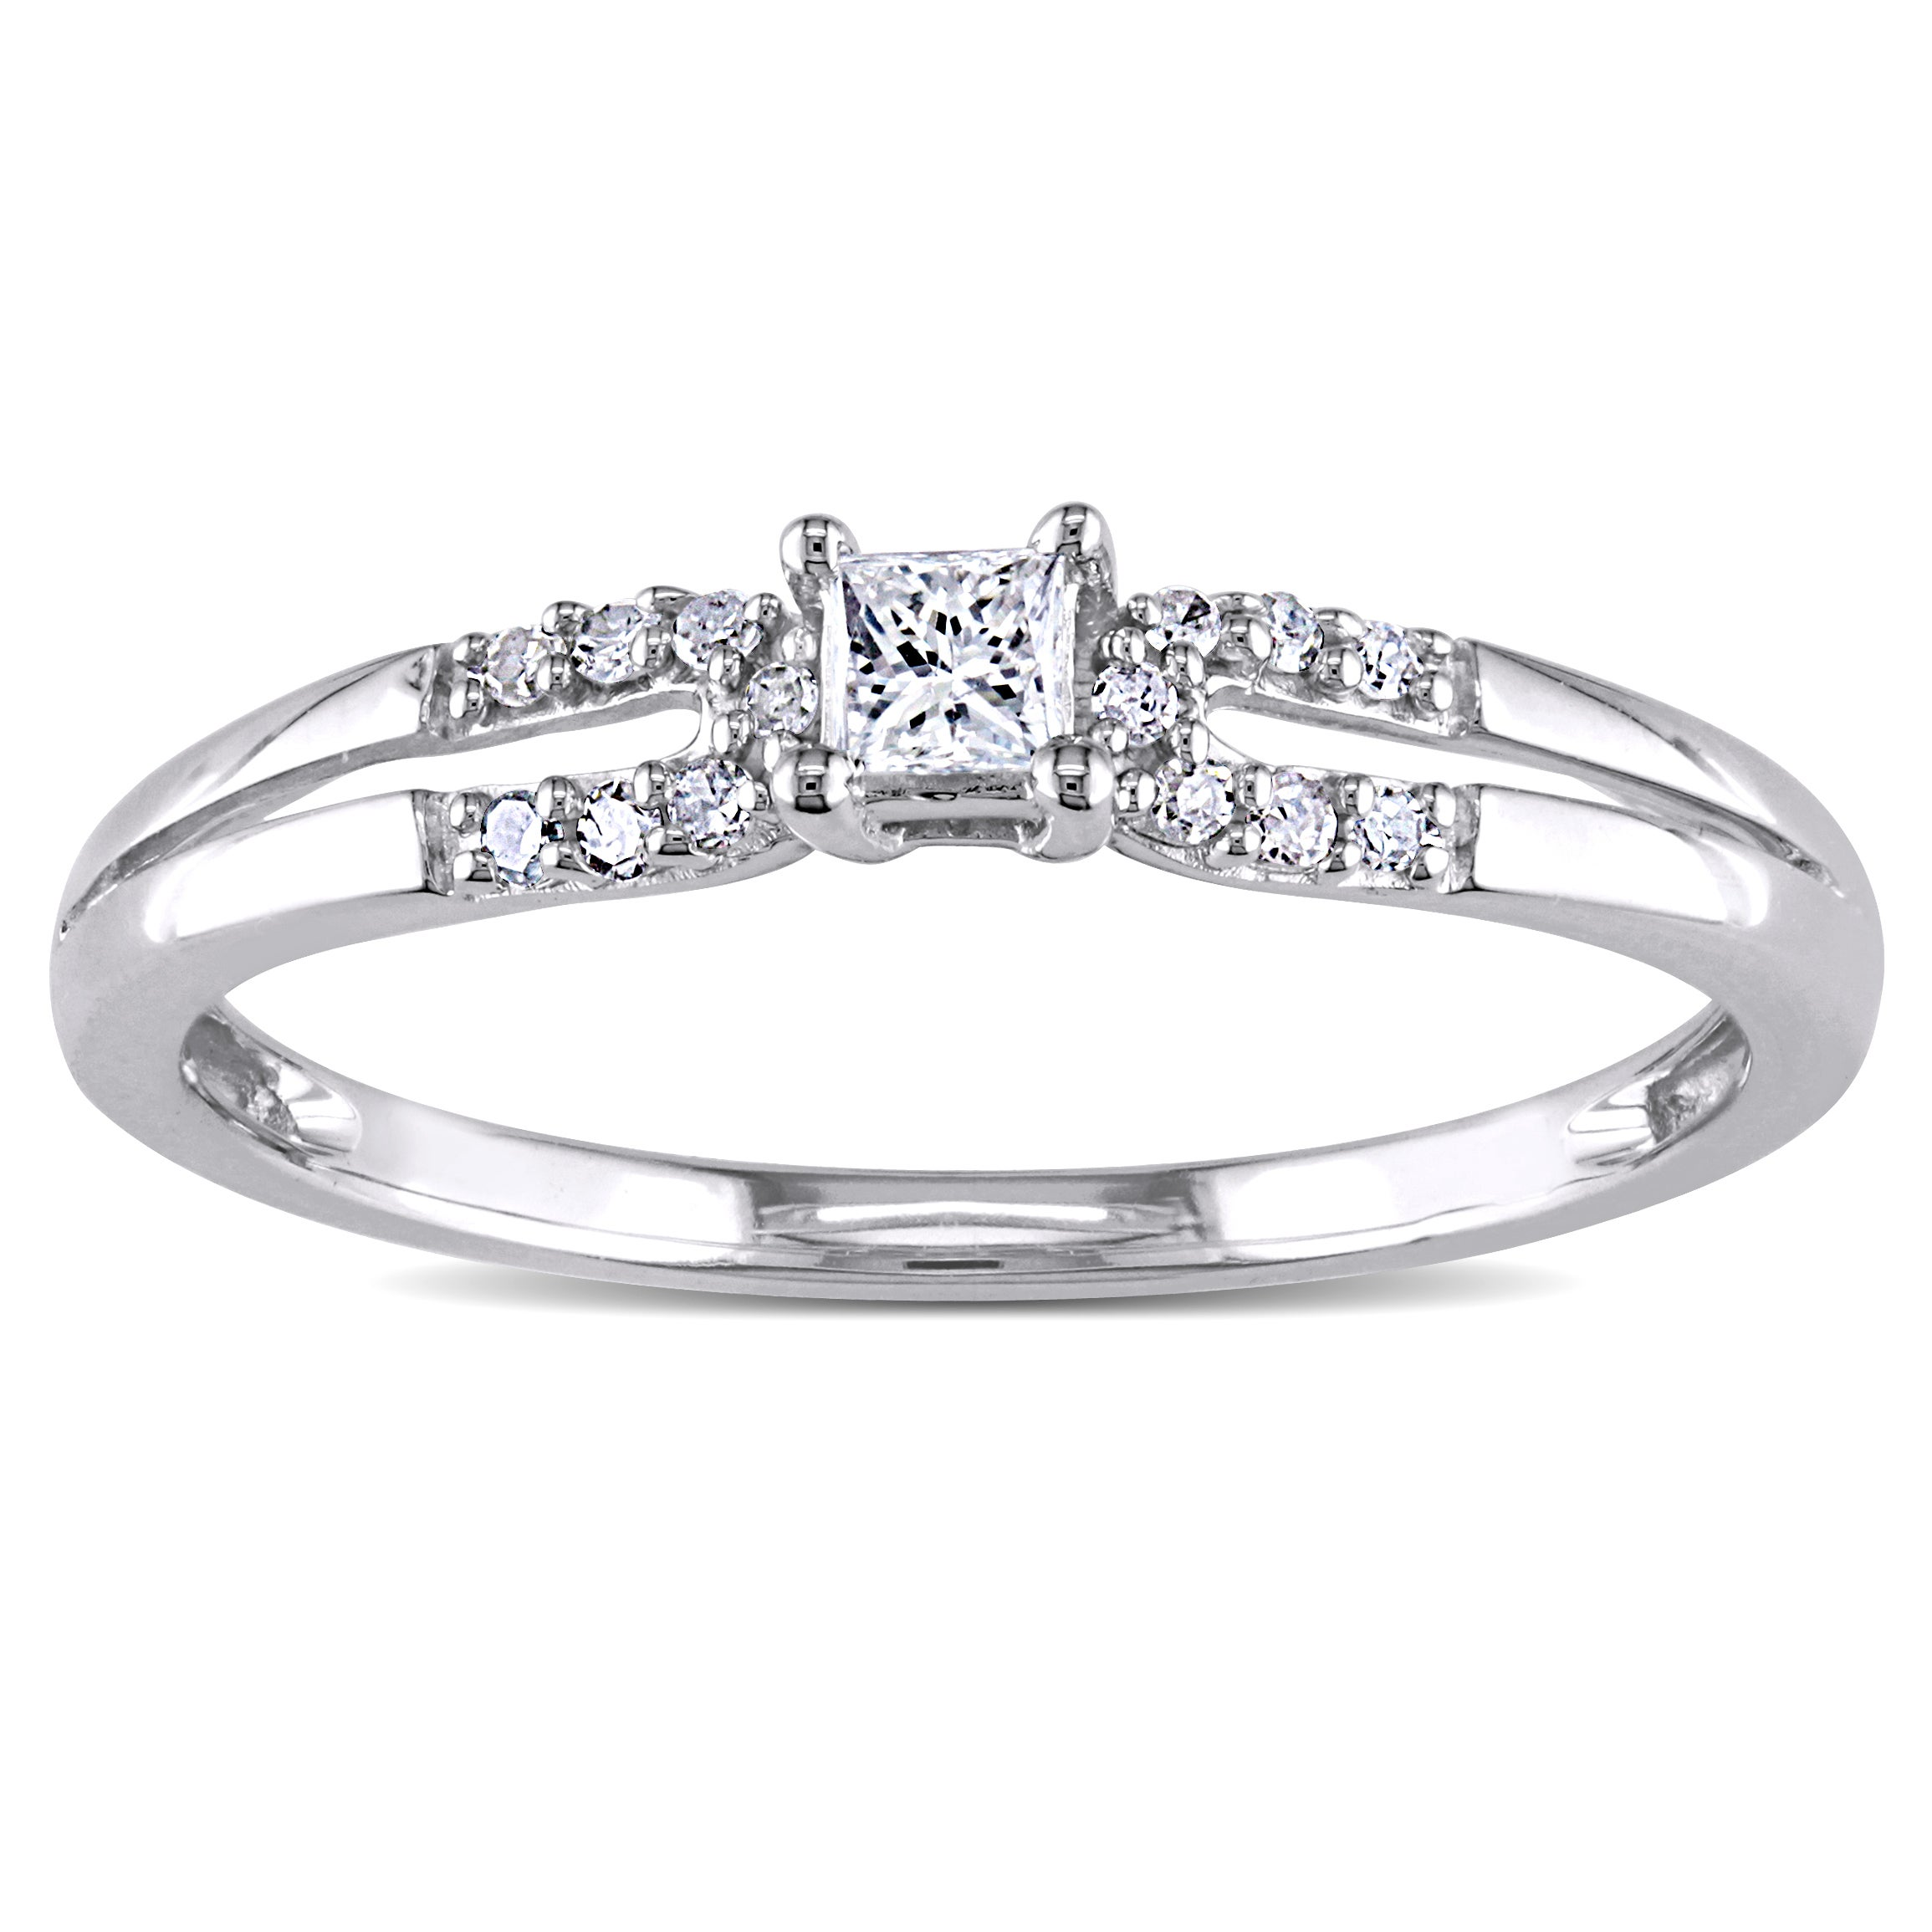 rings melody engagement promise diamond keepsake wedding walmart new